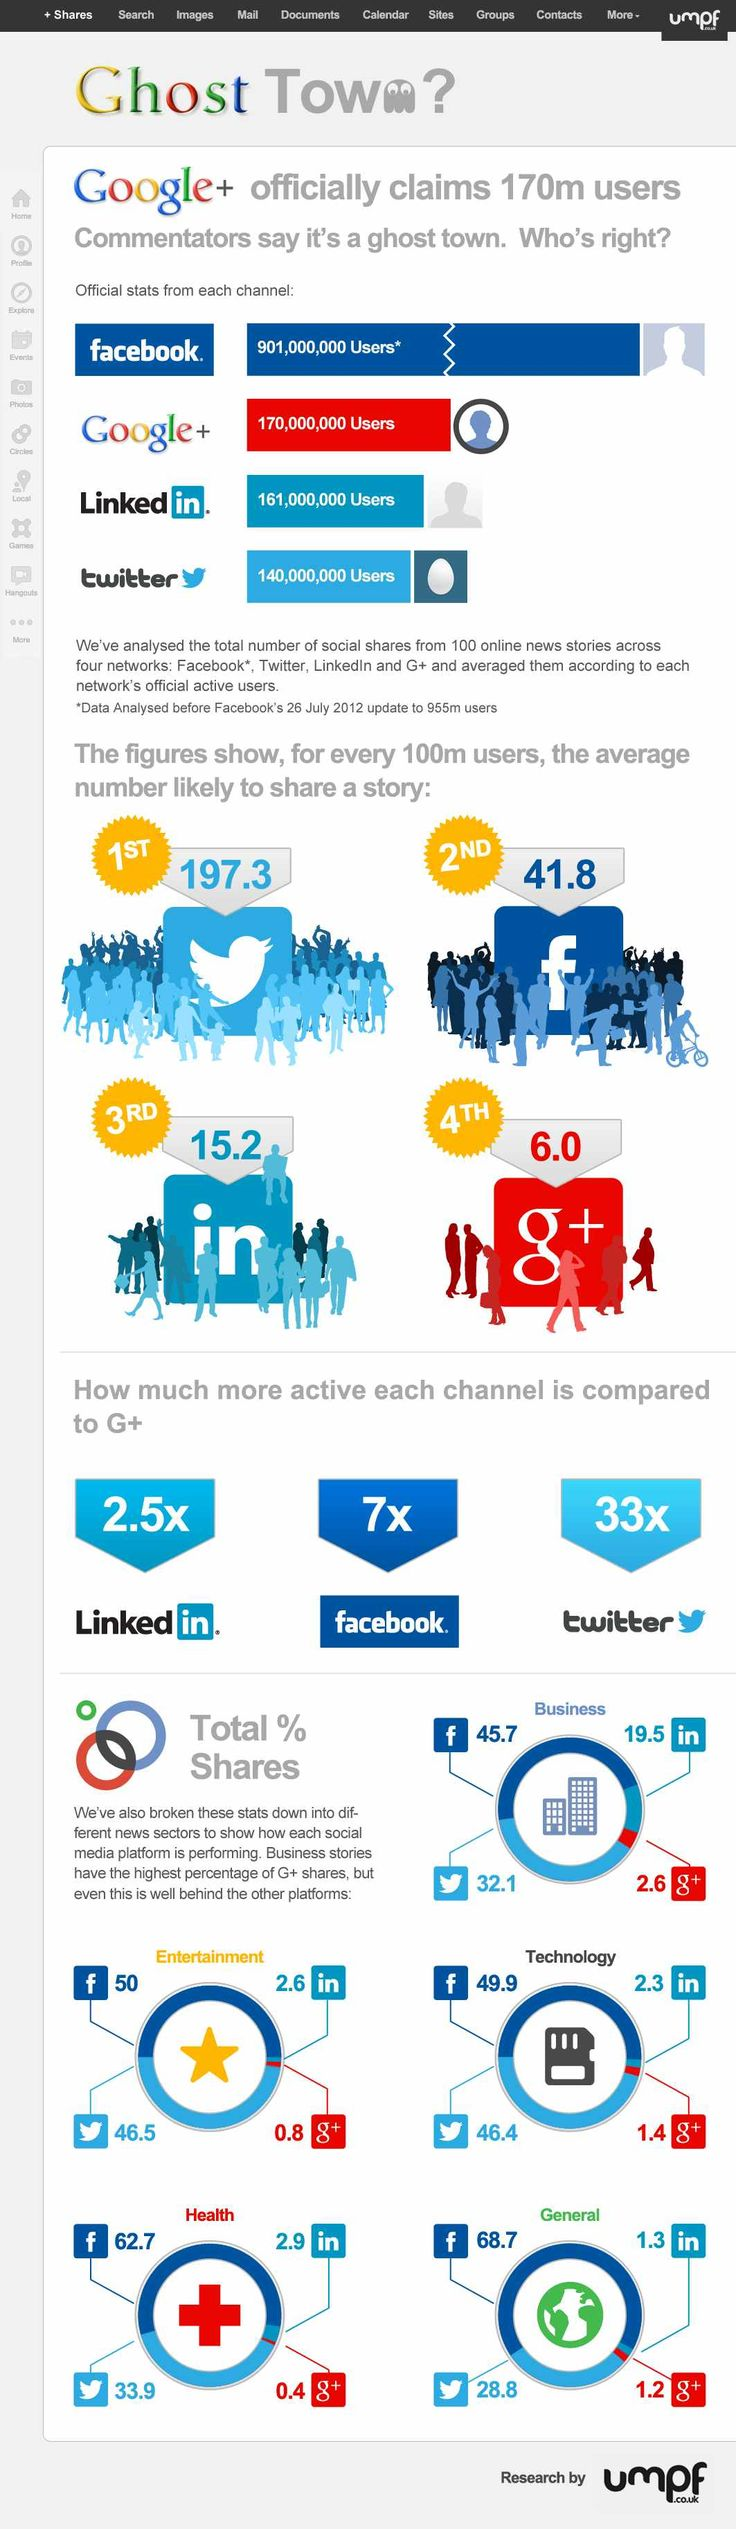 Infographic: Google Plus Ghost Town? G+ Social Shares Lowest Compared To Facebook, Twitter And Even LinkedIn